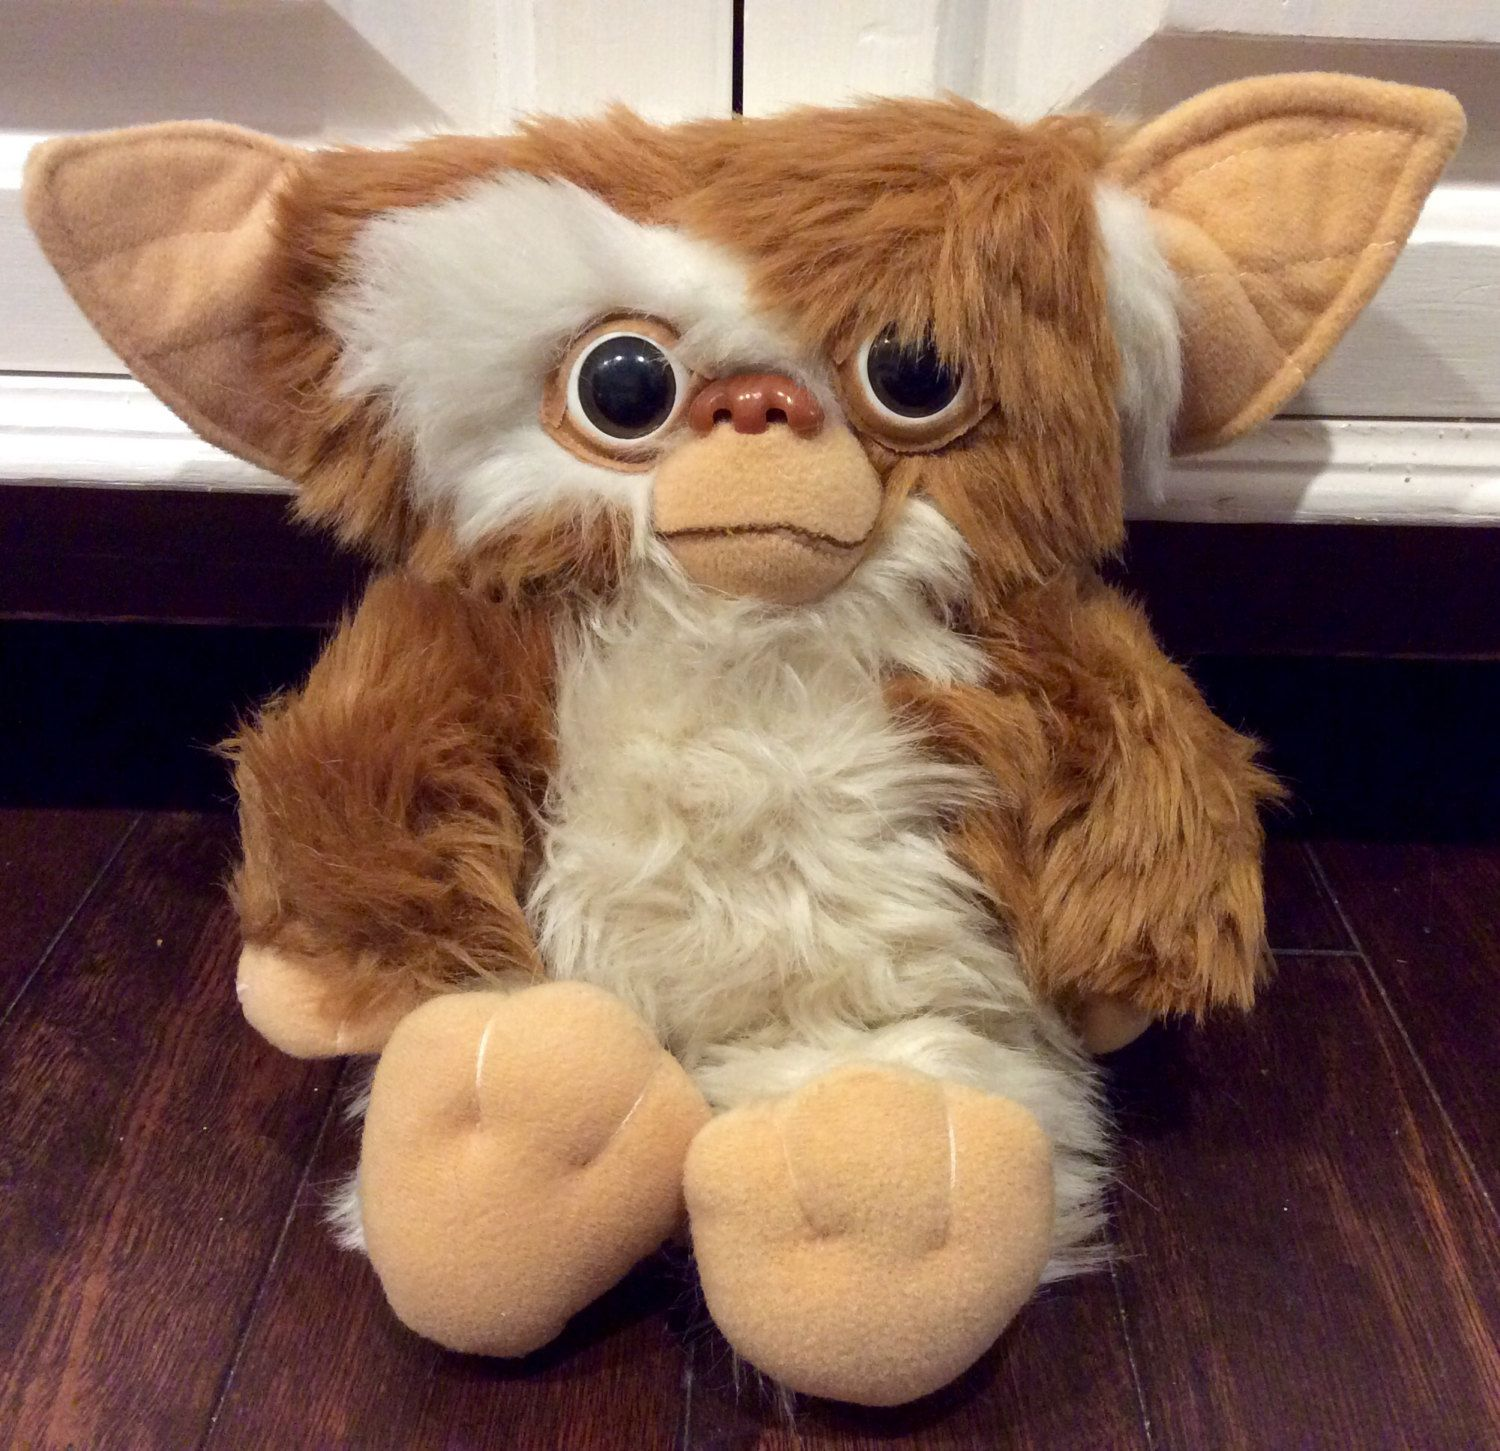 1984 Gizmo Plush Gremlin Doll By Applause Gremlins Doll Vintage